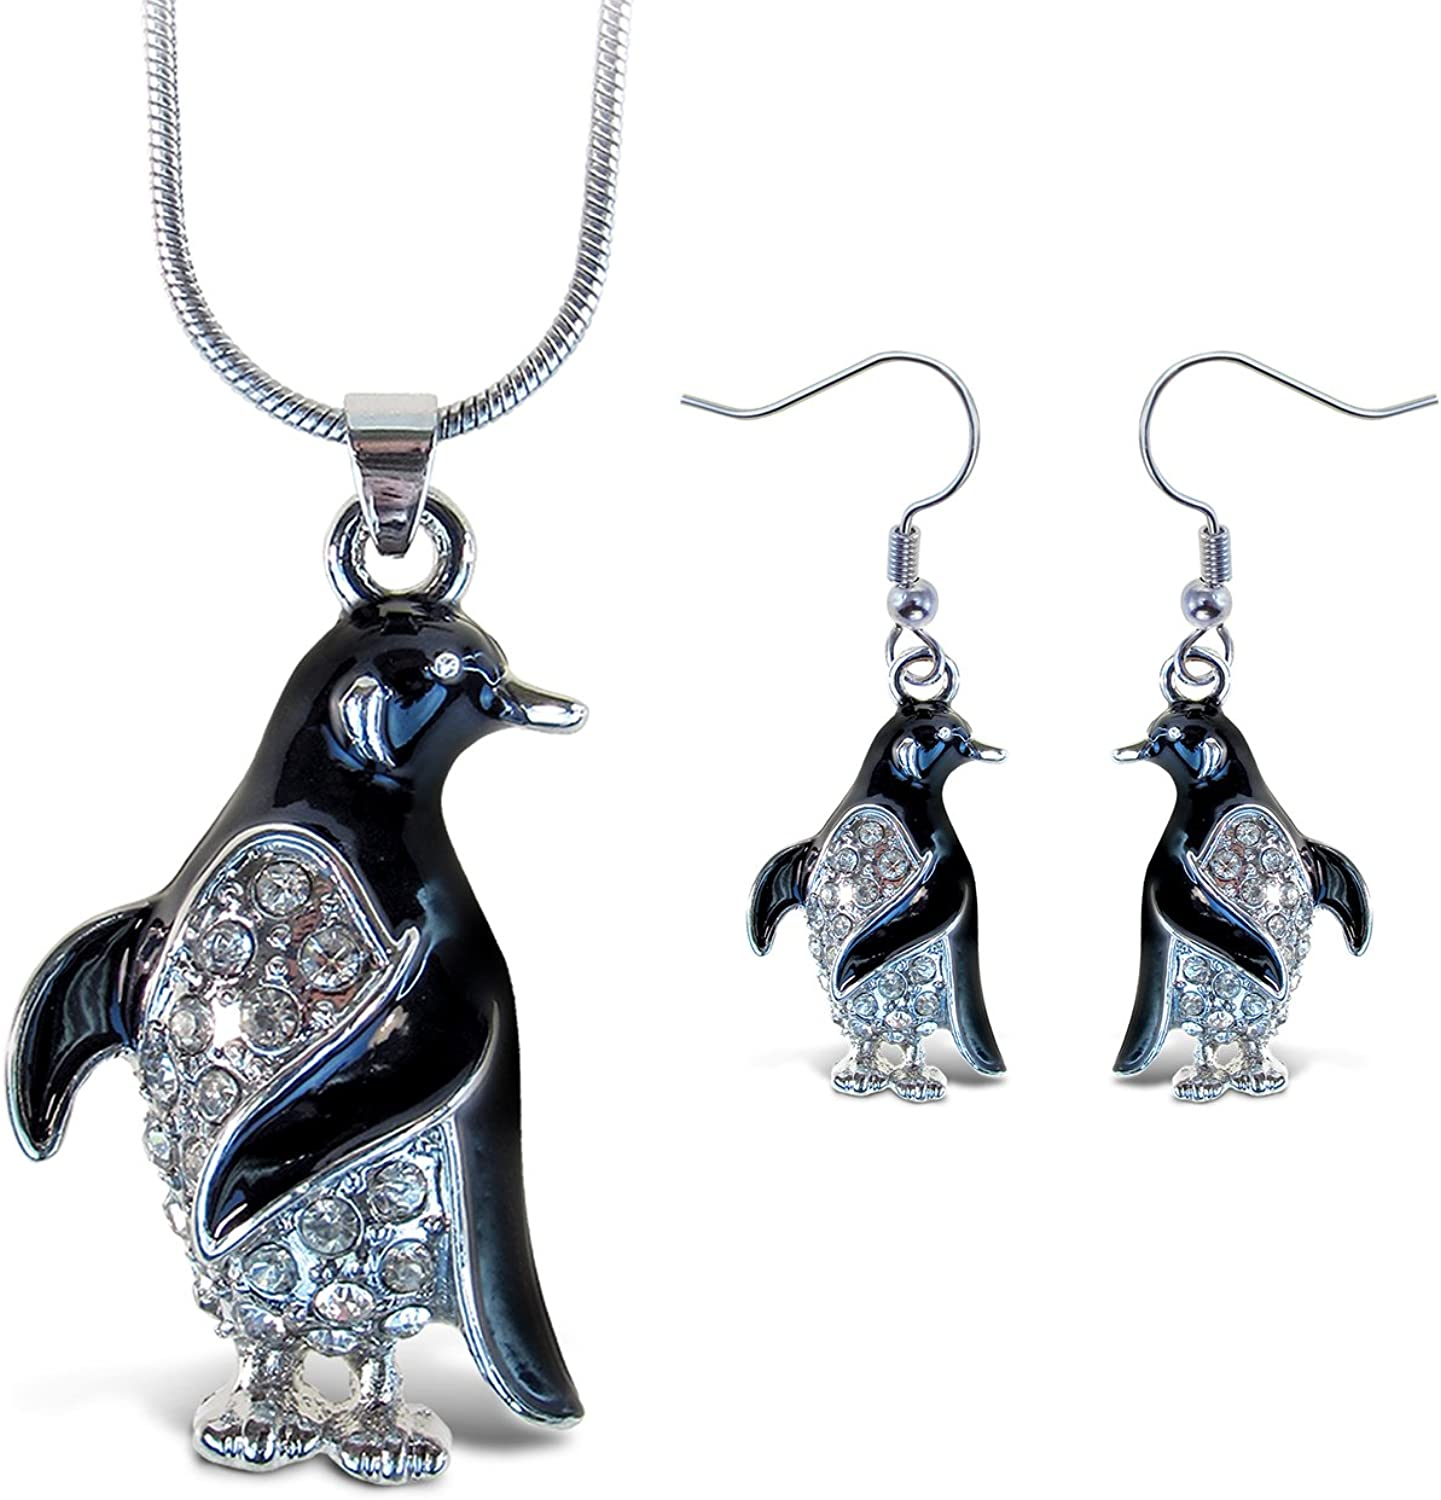 Puzzled Sparkling Penguin Necklace and Earrings Set Charming Necklace and Earring Set - Ocean Sea Life Theme - Aqua Jewelry Always Unique Gift - Item #K6319-6369